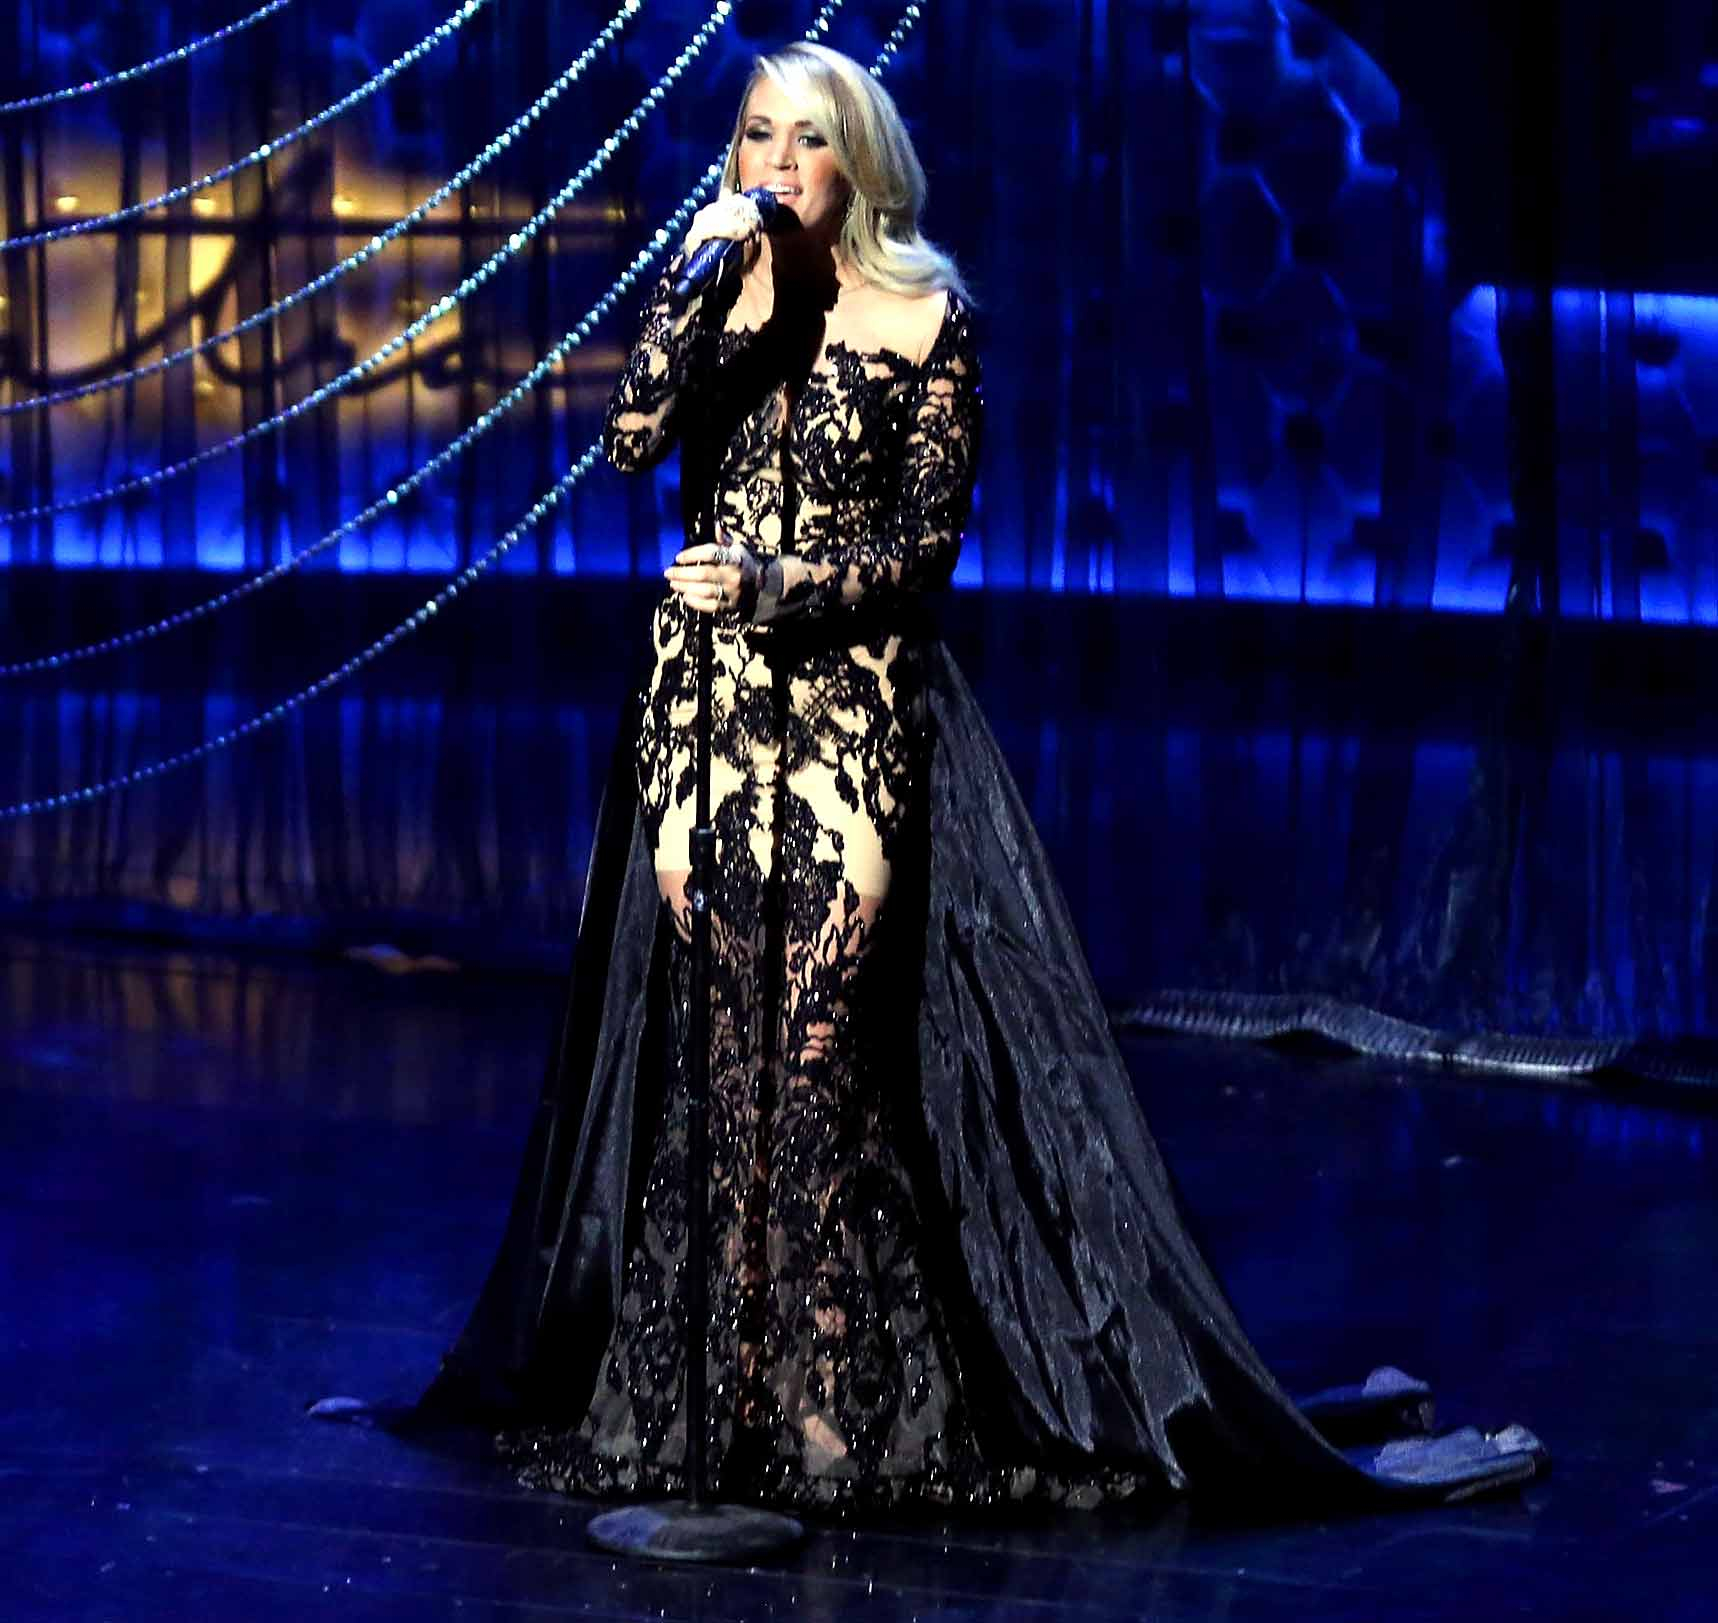 Carrie Underwood performs during